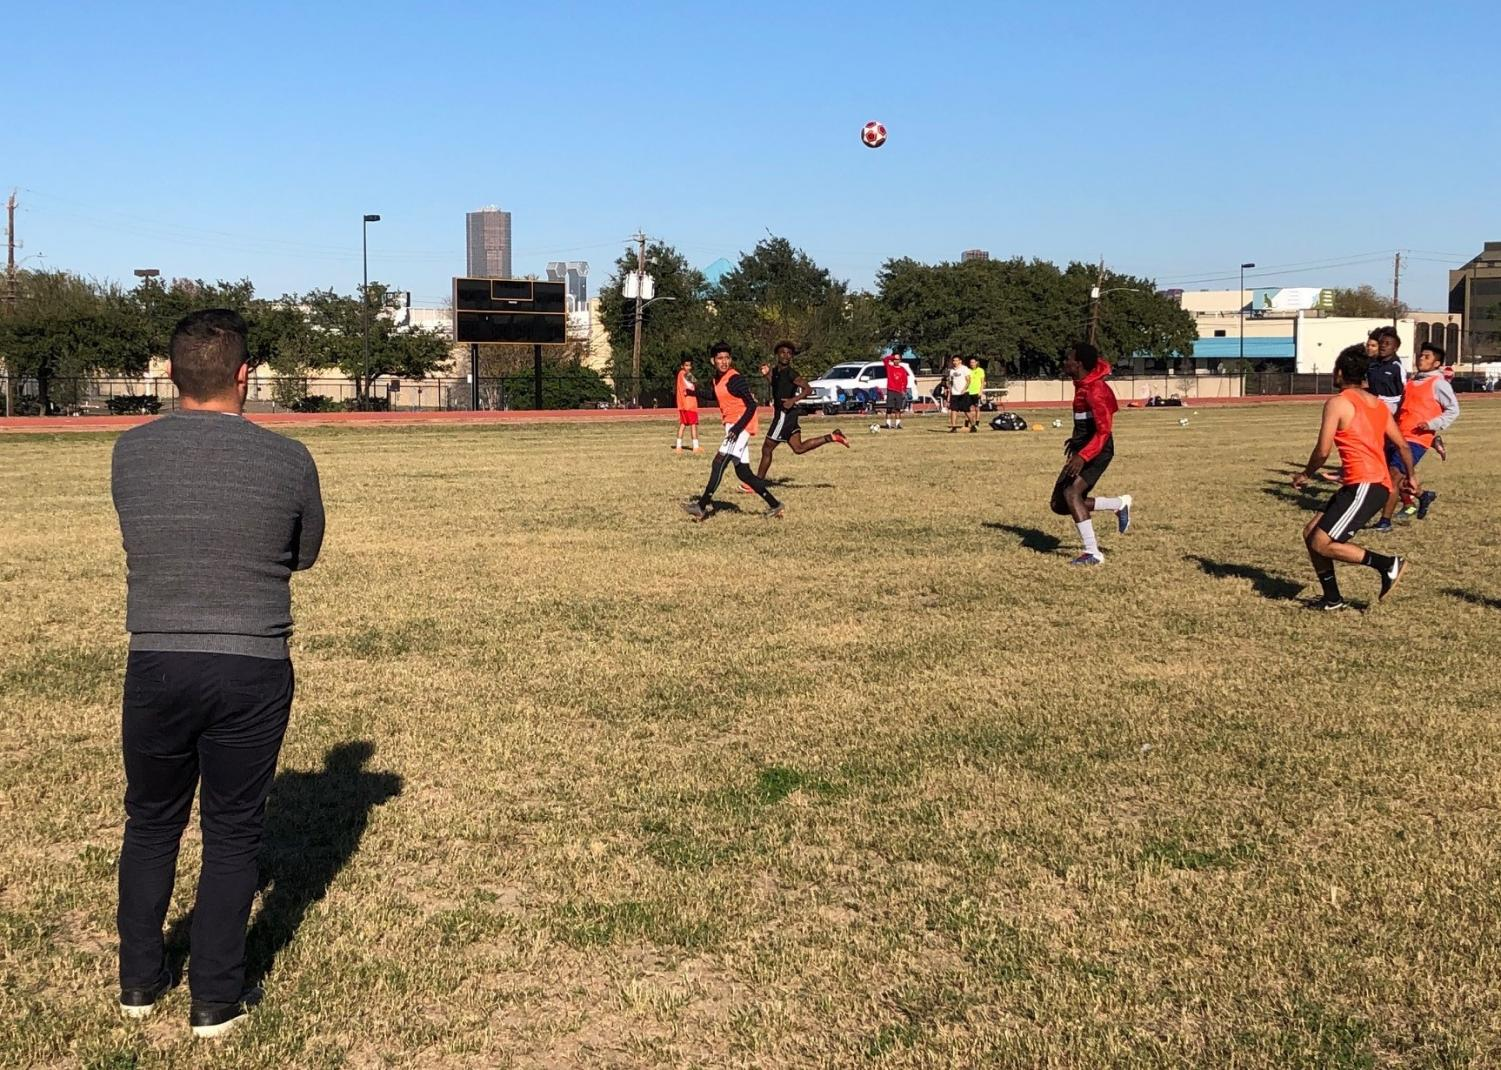 Coach Fidel Andrade watches as his varsity soccer players practice on the new grass field in front of the new Wisdom HS campus building near Richmond & Hillcroft. This is the first season that the Generals have been able to practice on their campus in five years.